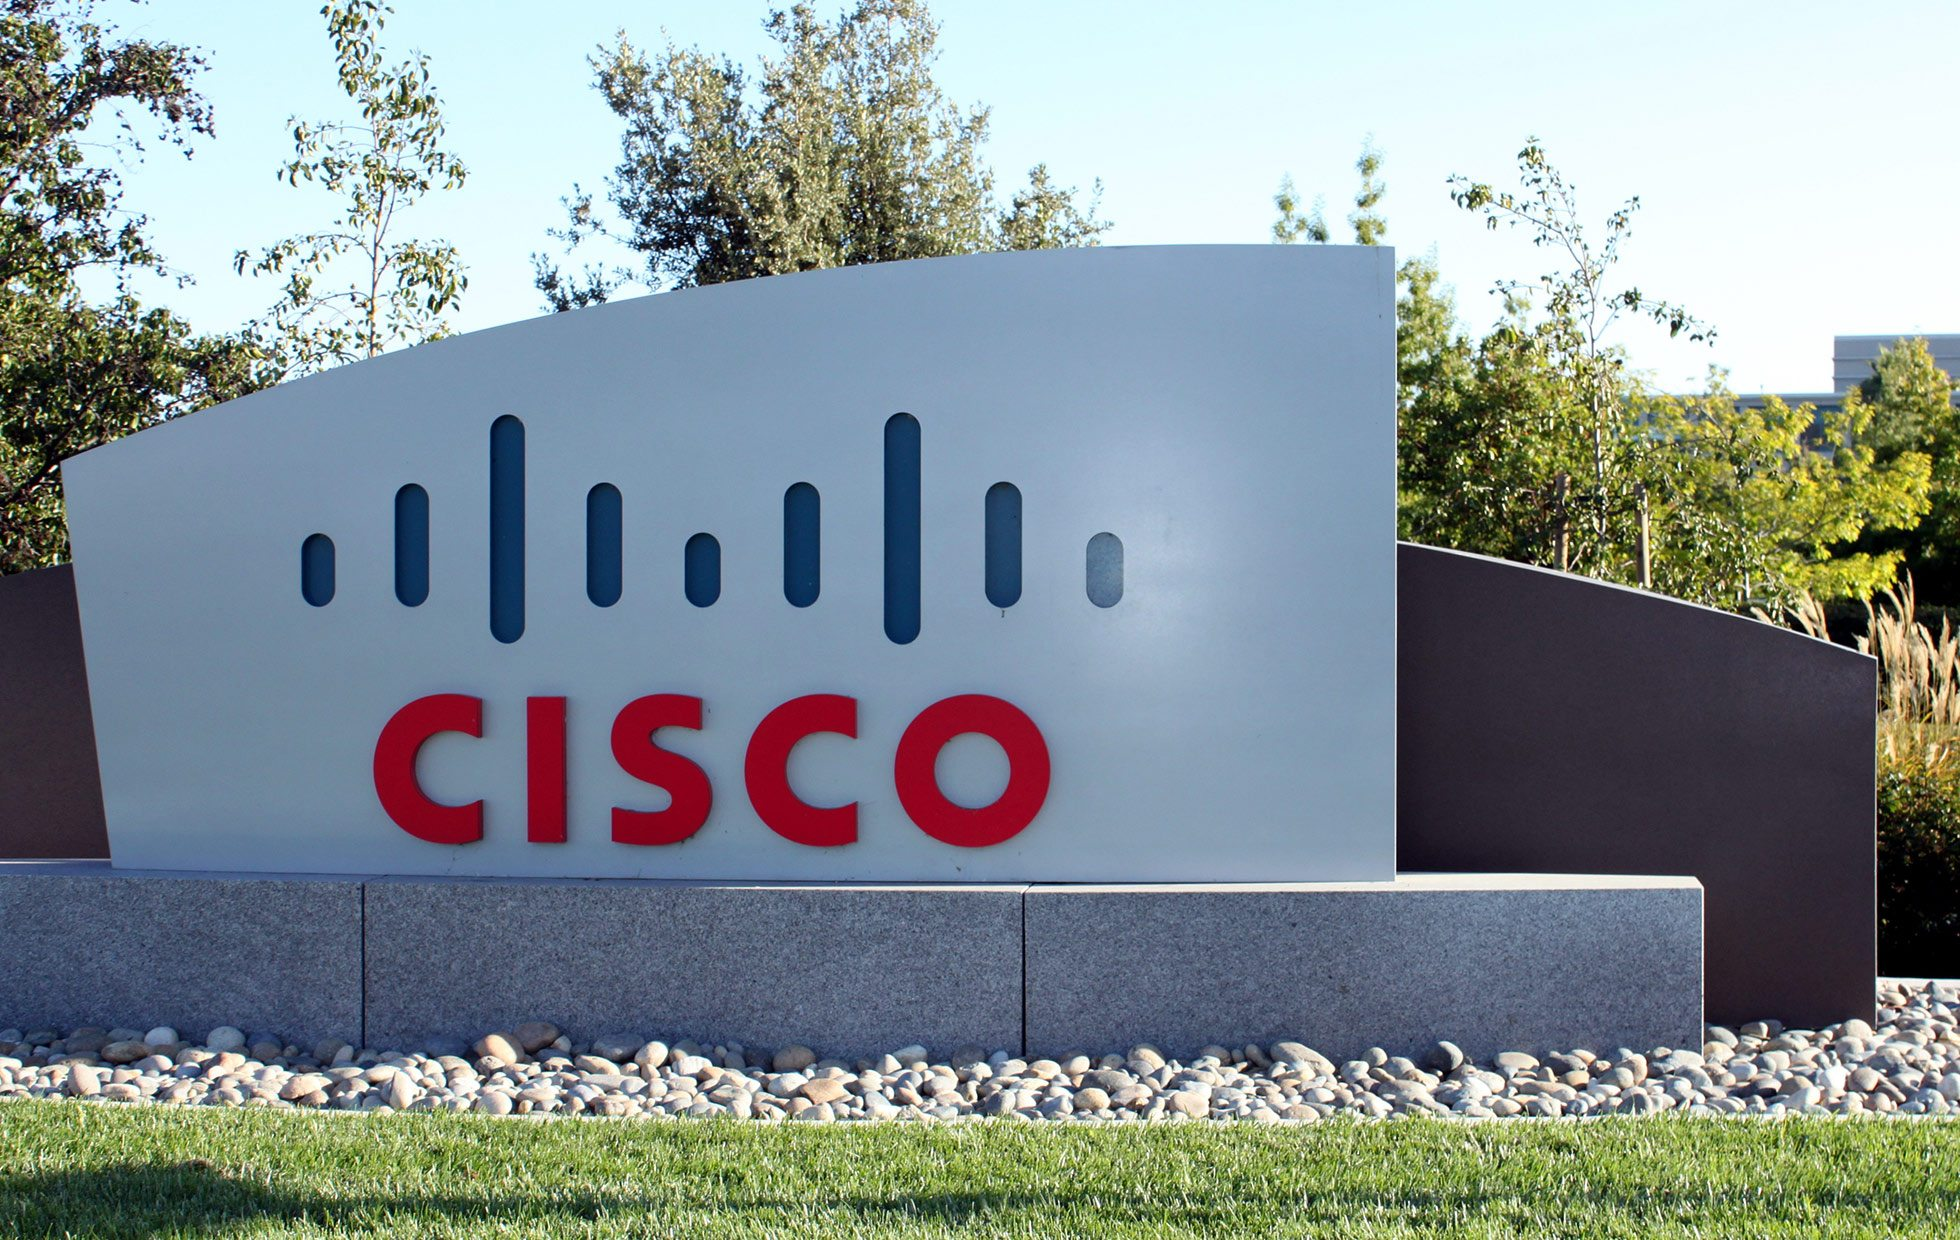 Cisco compra a la firma de ciberseguridad Duo Security por 2,350 mdd